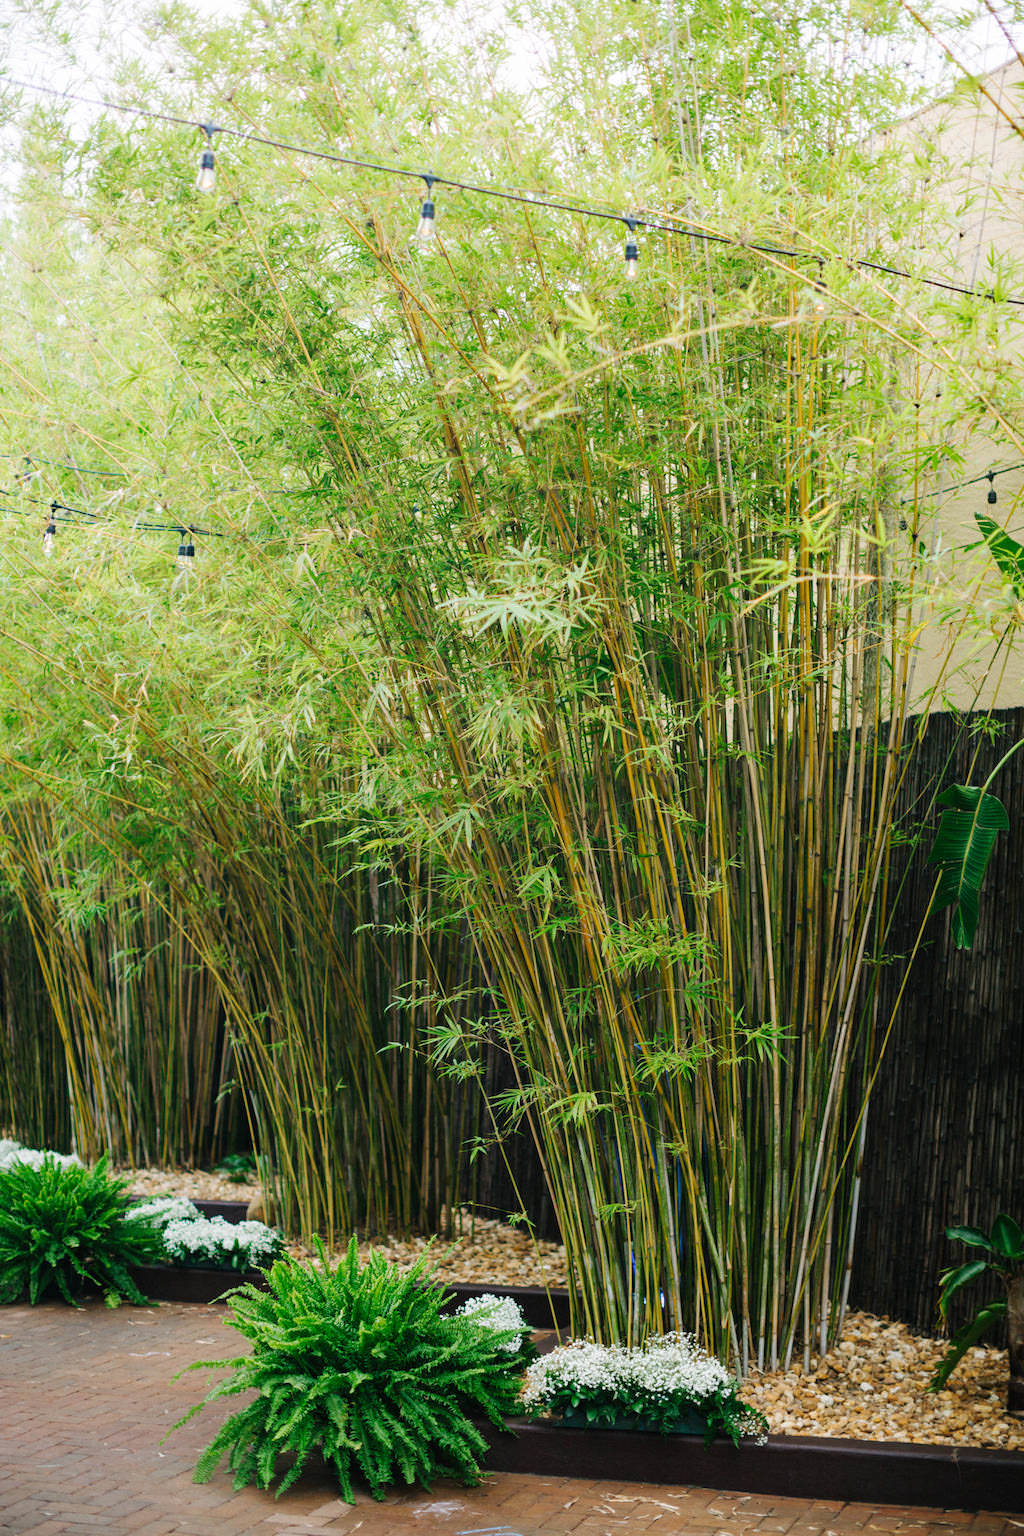 Exotic, Lush Tall Bamboo Garden in Courtyard, Greenery Floral Wedding Decor, Outdoor String Lights | Downtown St. Pete Unique Wedding Venue NOVA 535